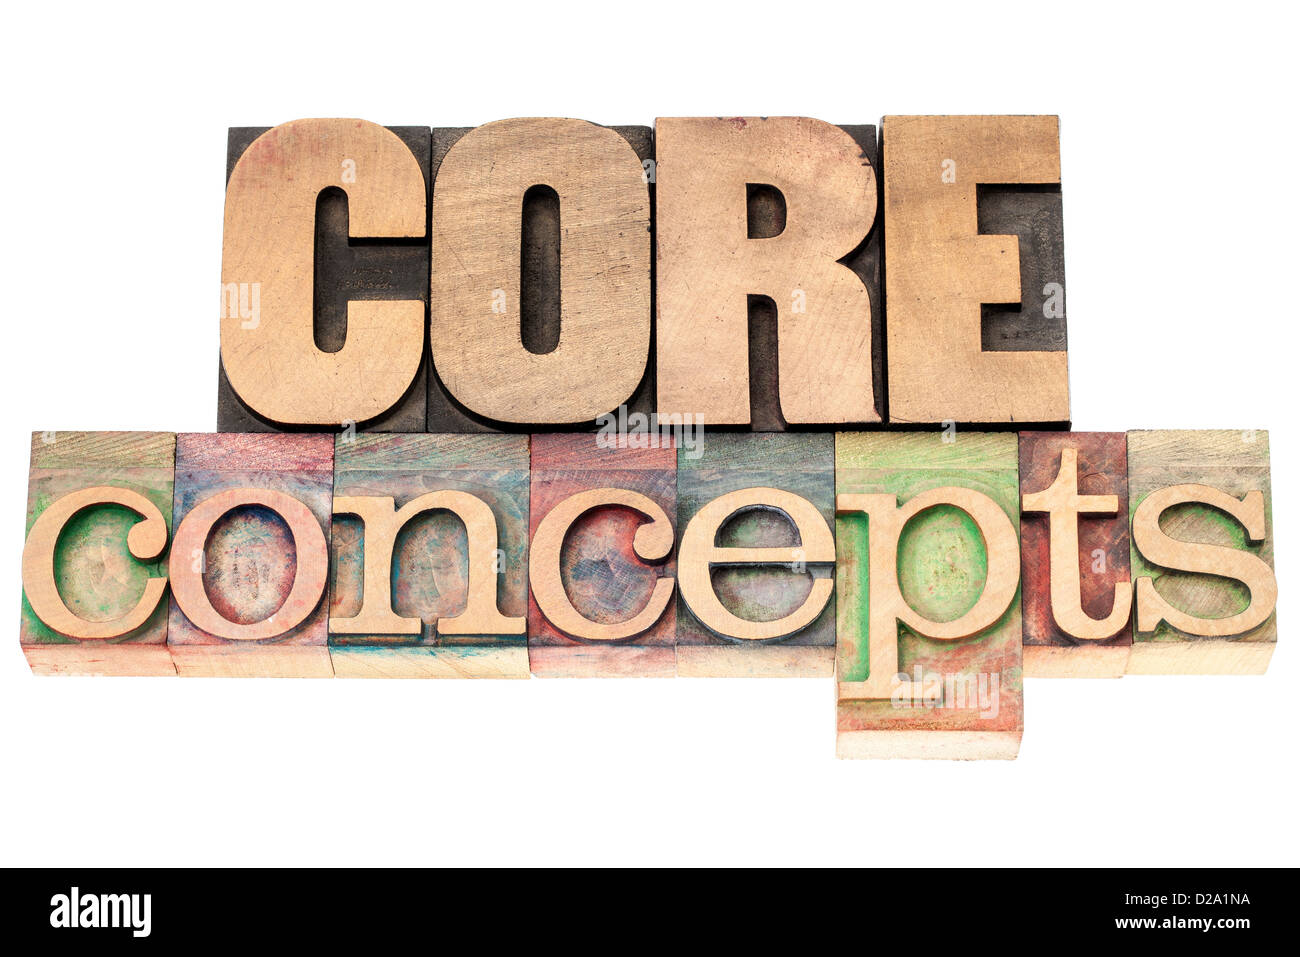 core concepts - isolated text in vintage letterpress wood type printing blocks - Stock Image